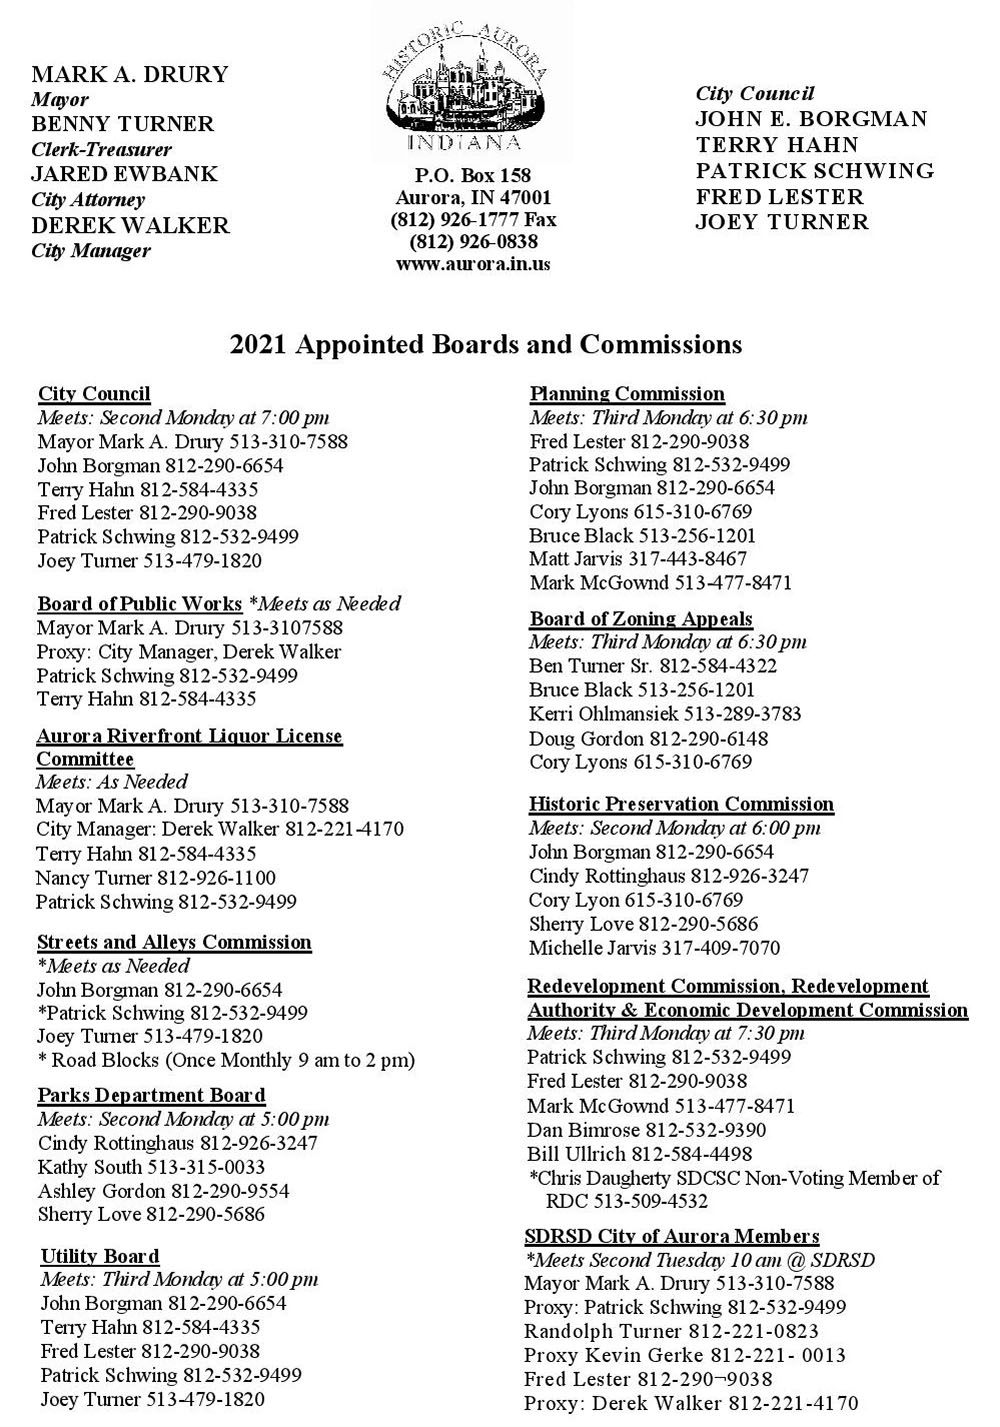 List of Boards and Commissions